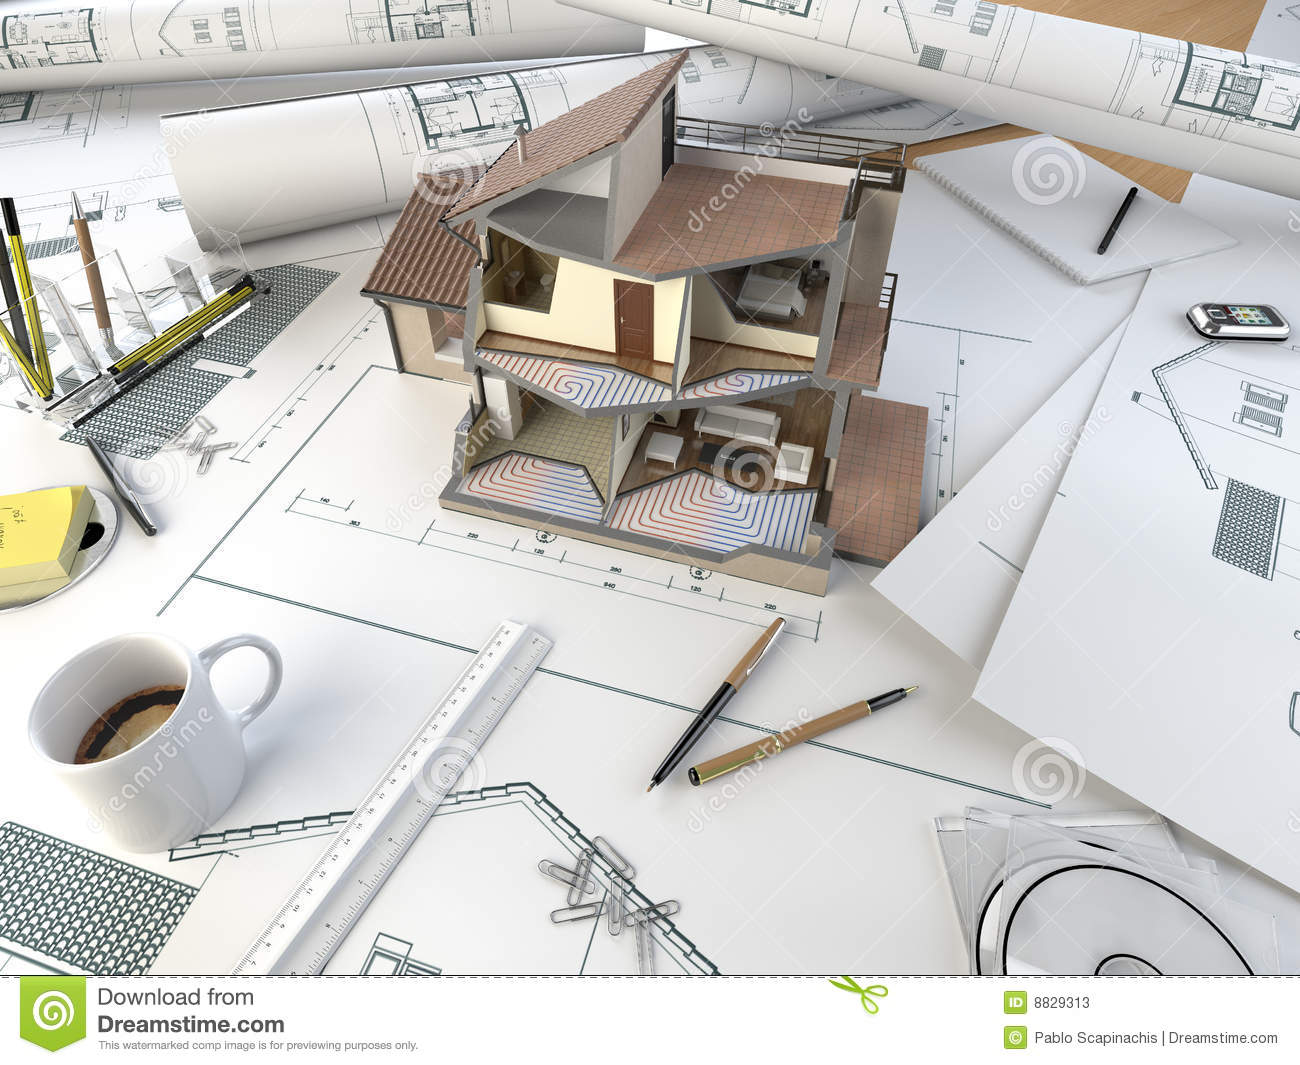 Architecture Drawing Table architect drawing table with section model stock photos - image